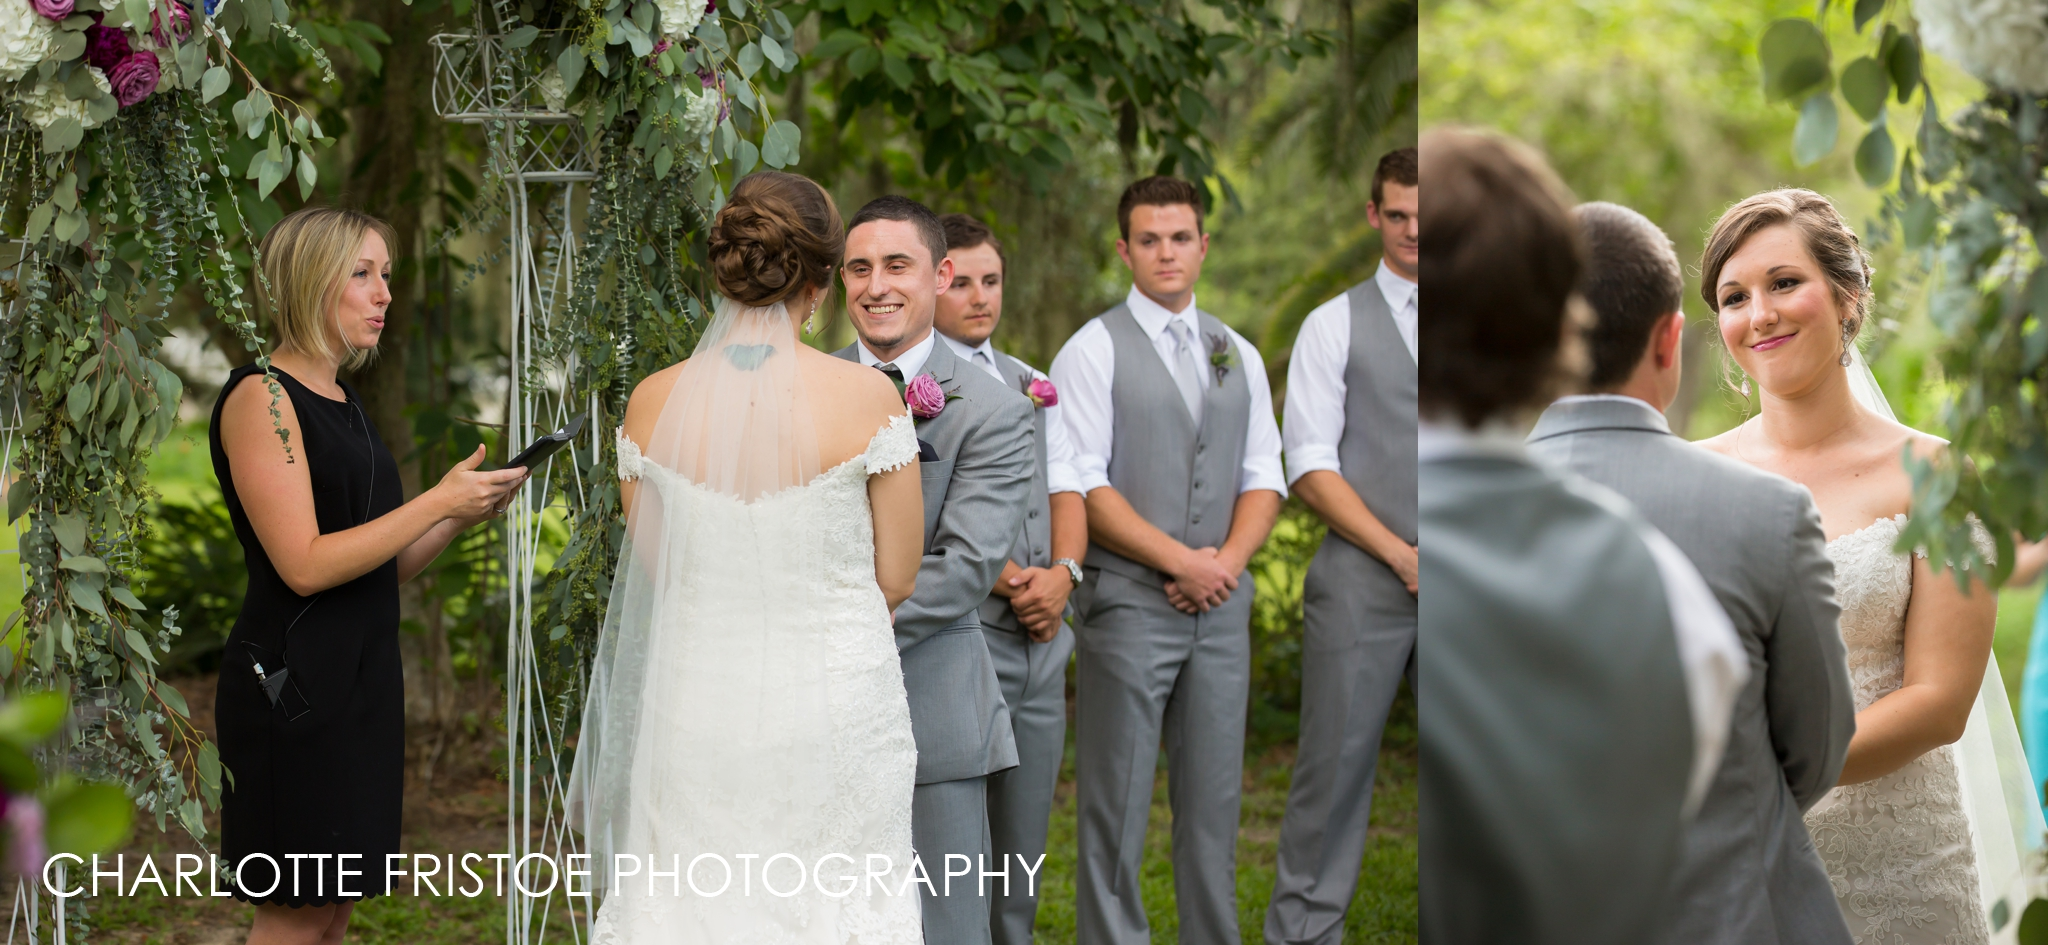 Tallahassee Wedding Photographer_0270.jpg